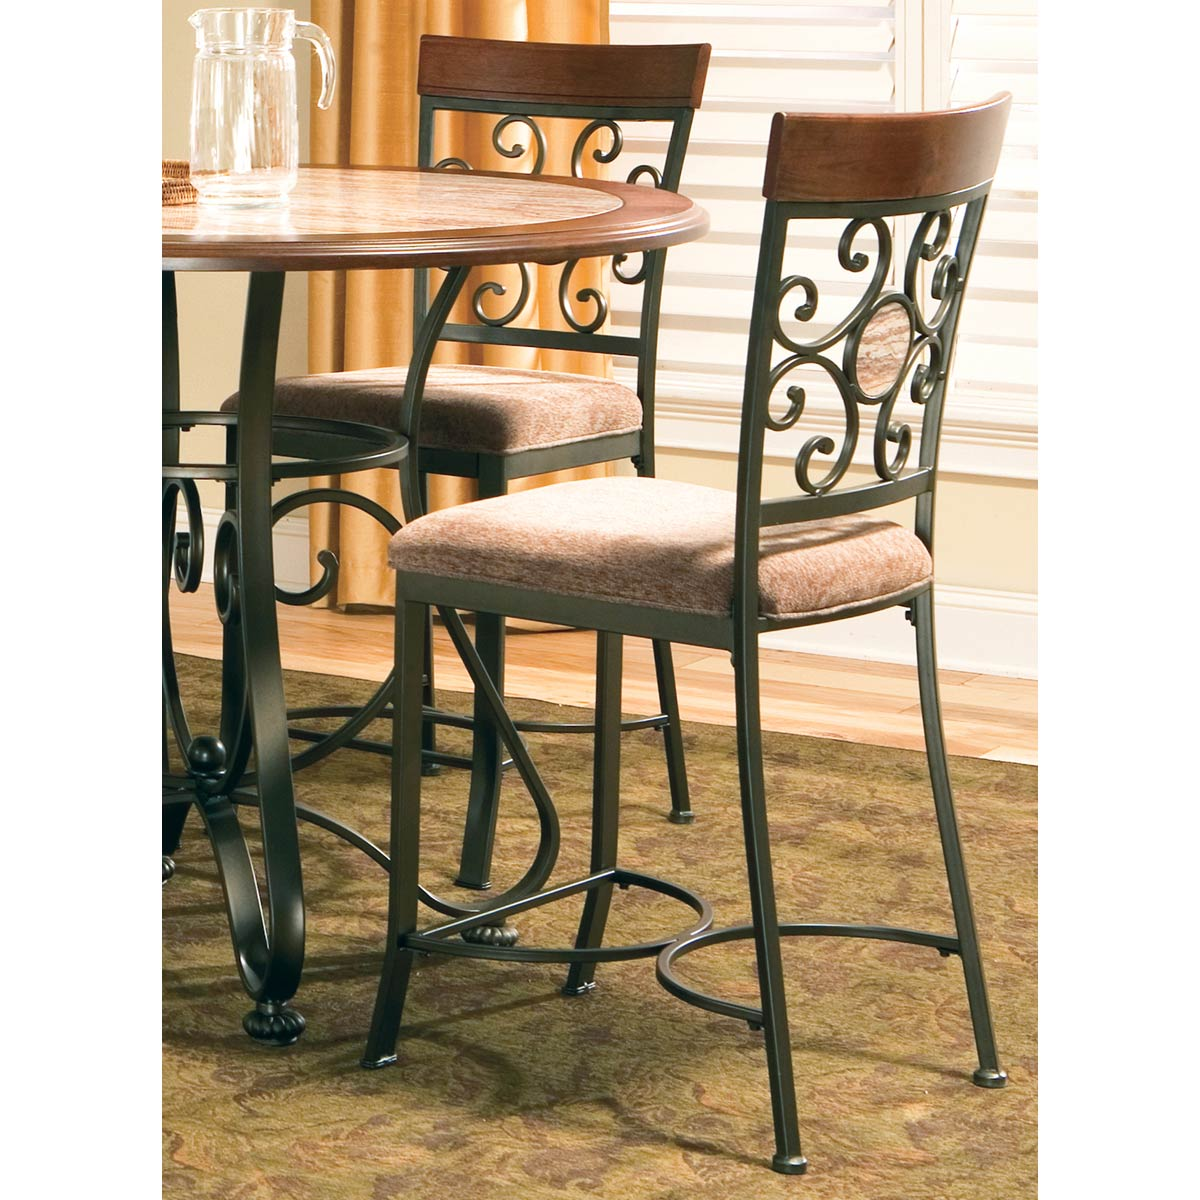 ... Thompson 5 Piece Counter Dining Set   Wrought Iron, Wood   SSC TP450   ...